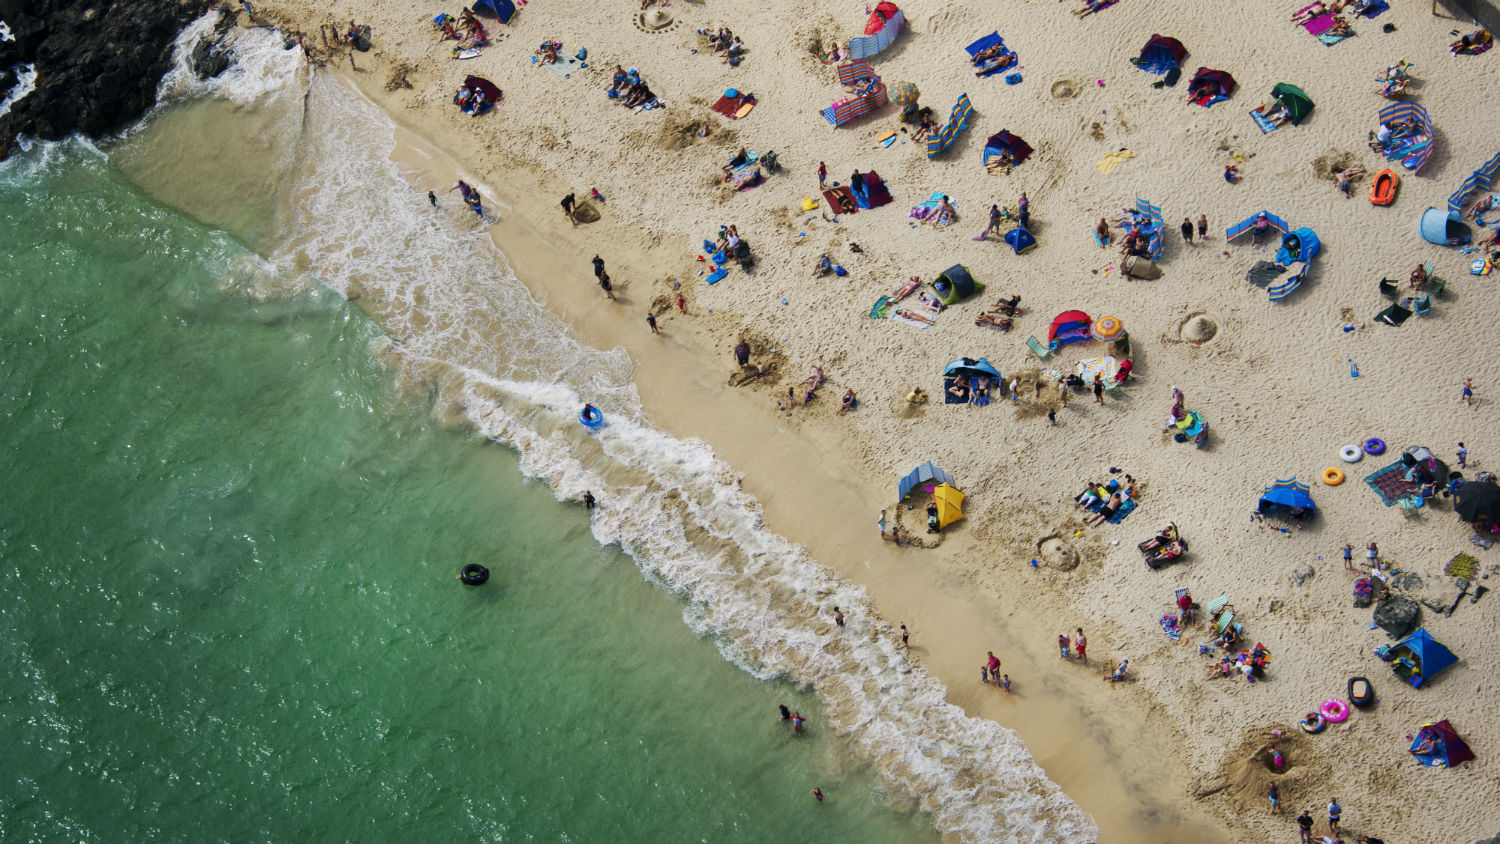 Aerial view of a busy beach on a sunny day